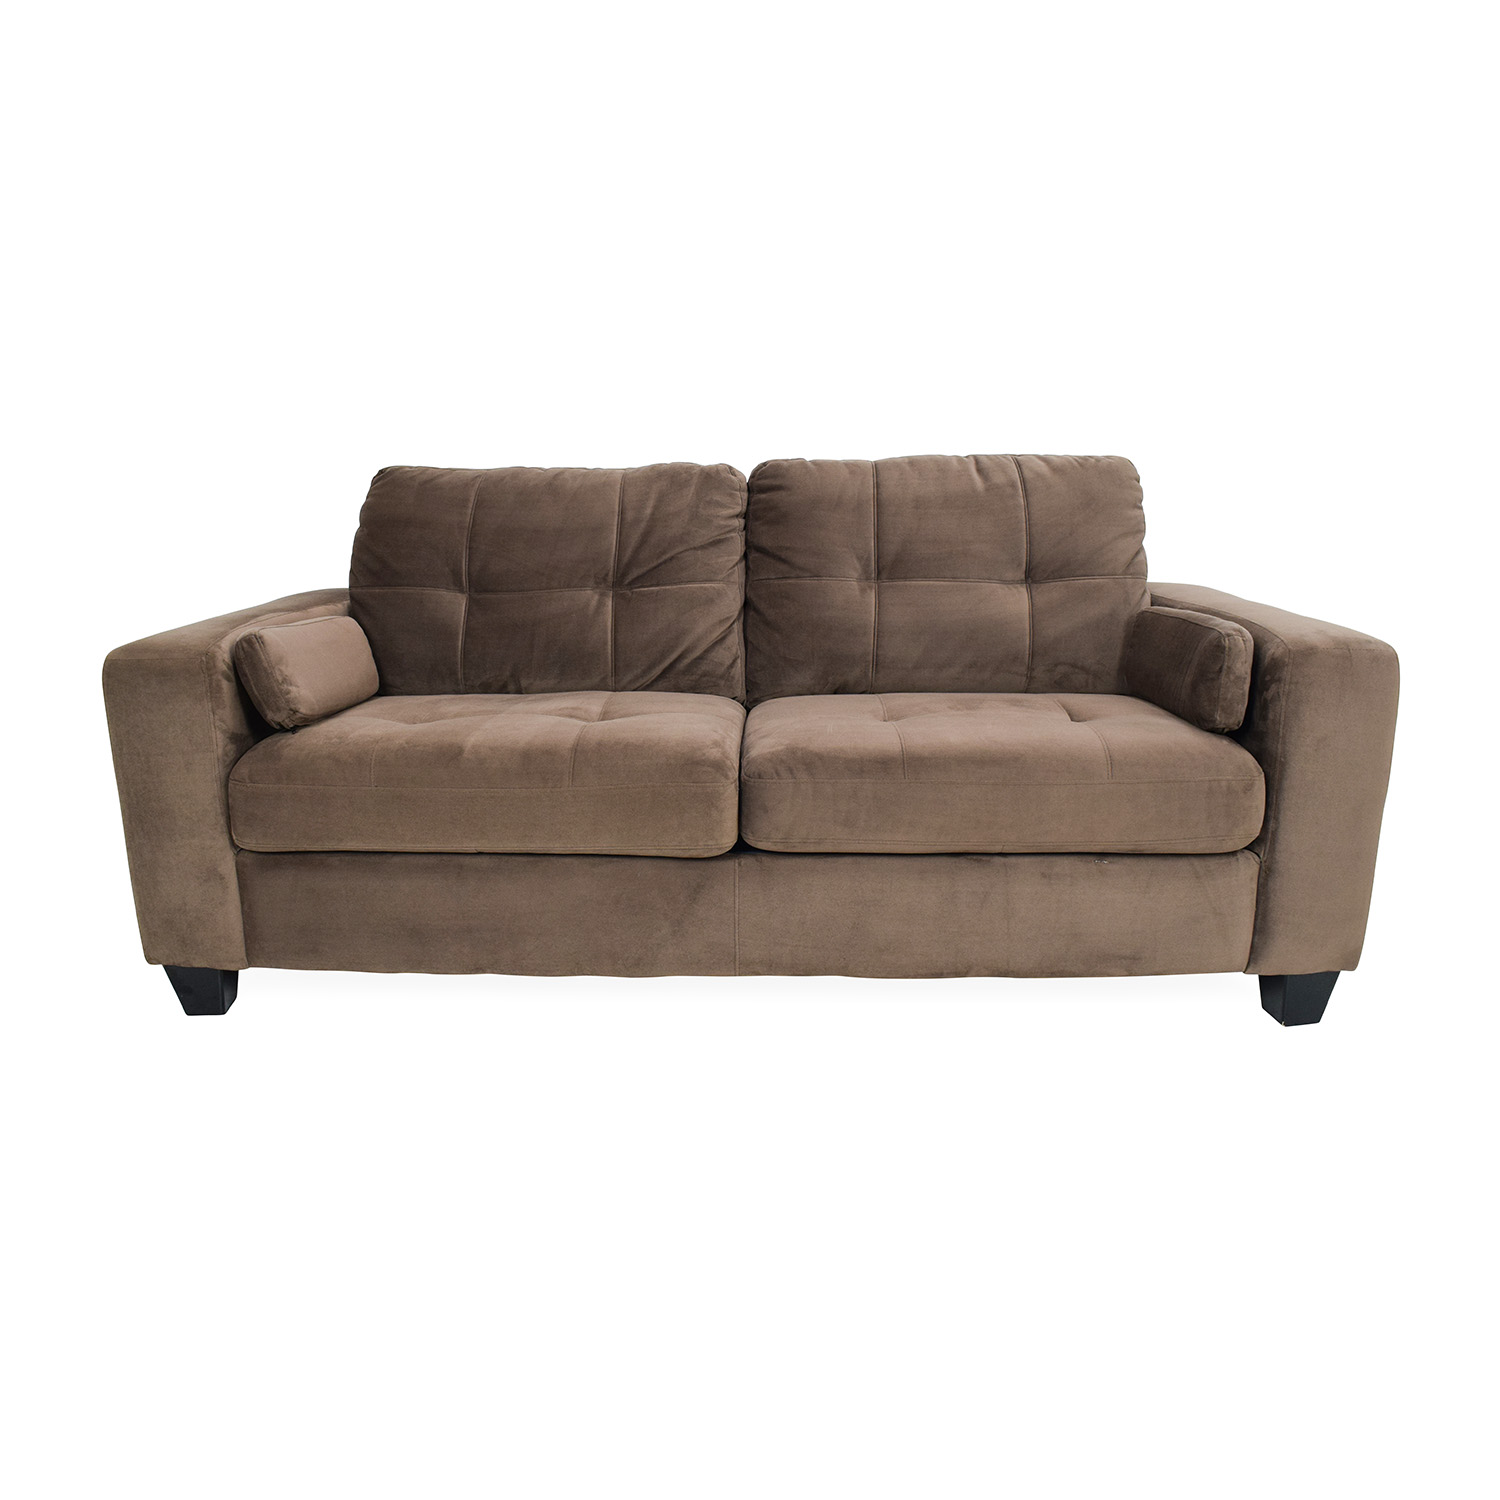 Jennifer convertibles sofa beds jennifer convertibles sofa for Sofa bed repair